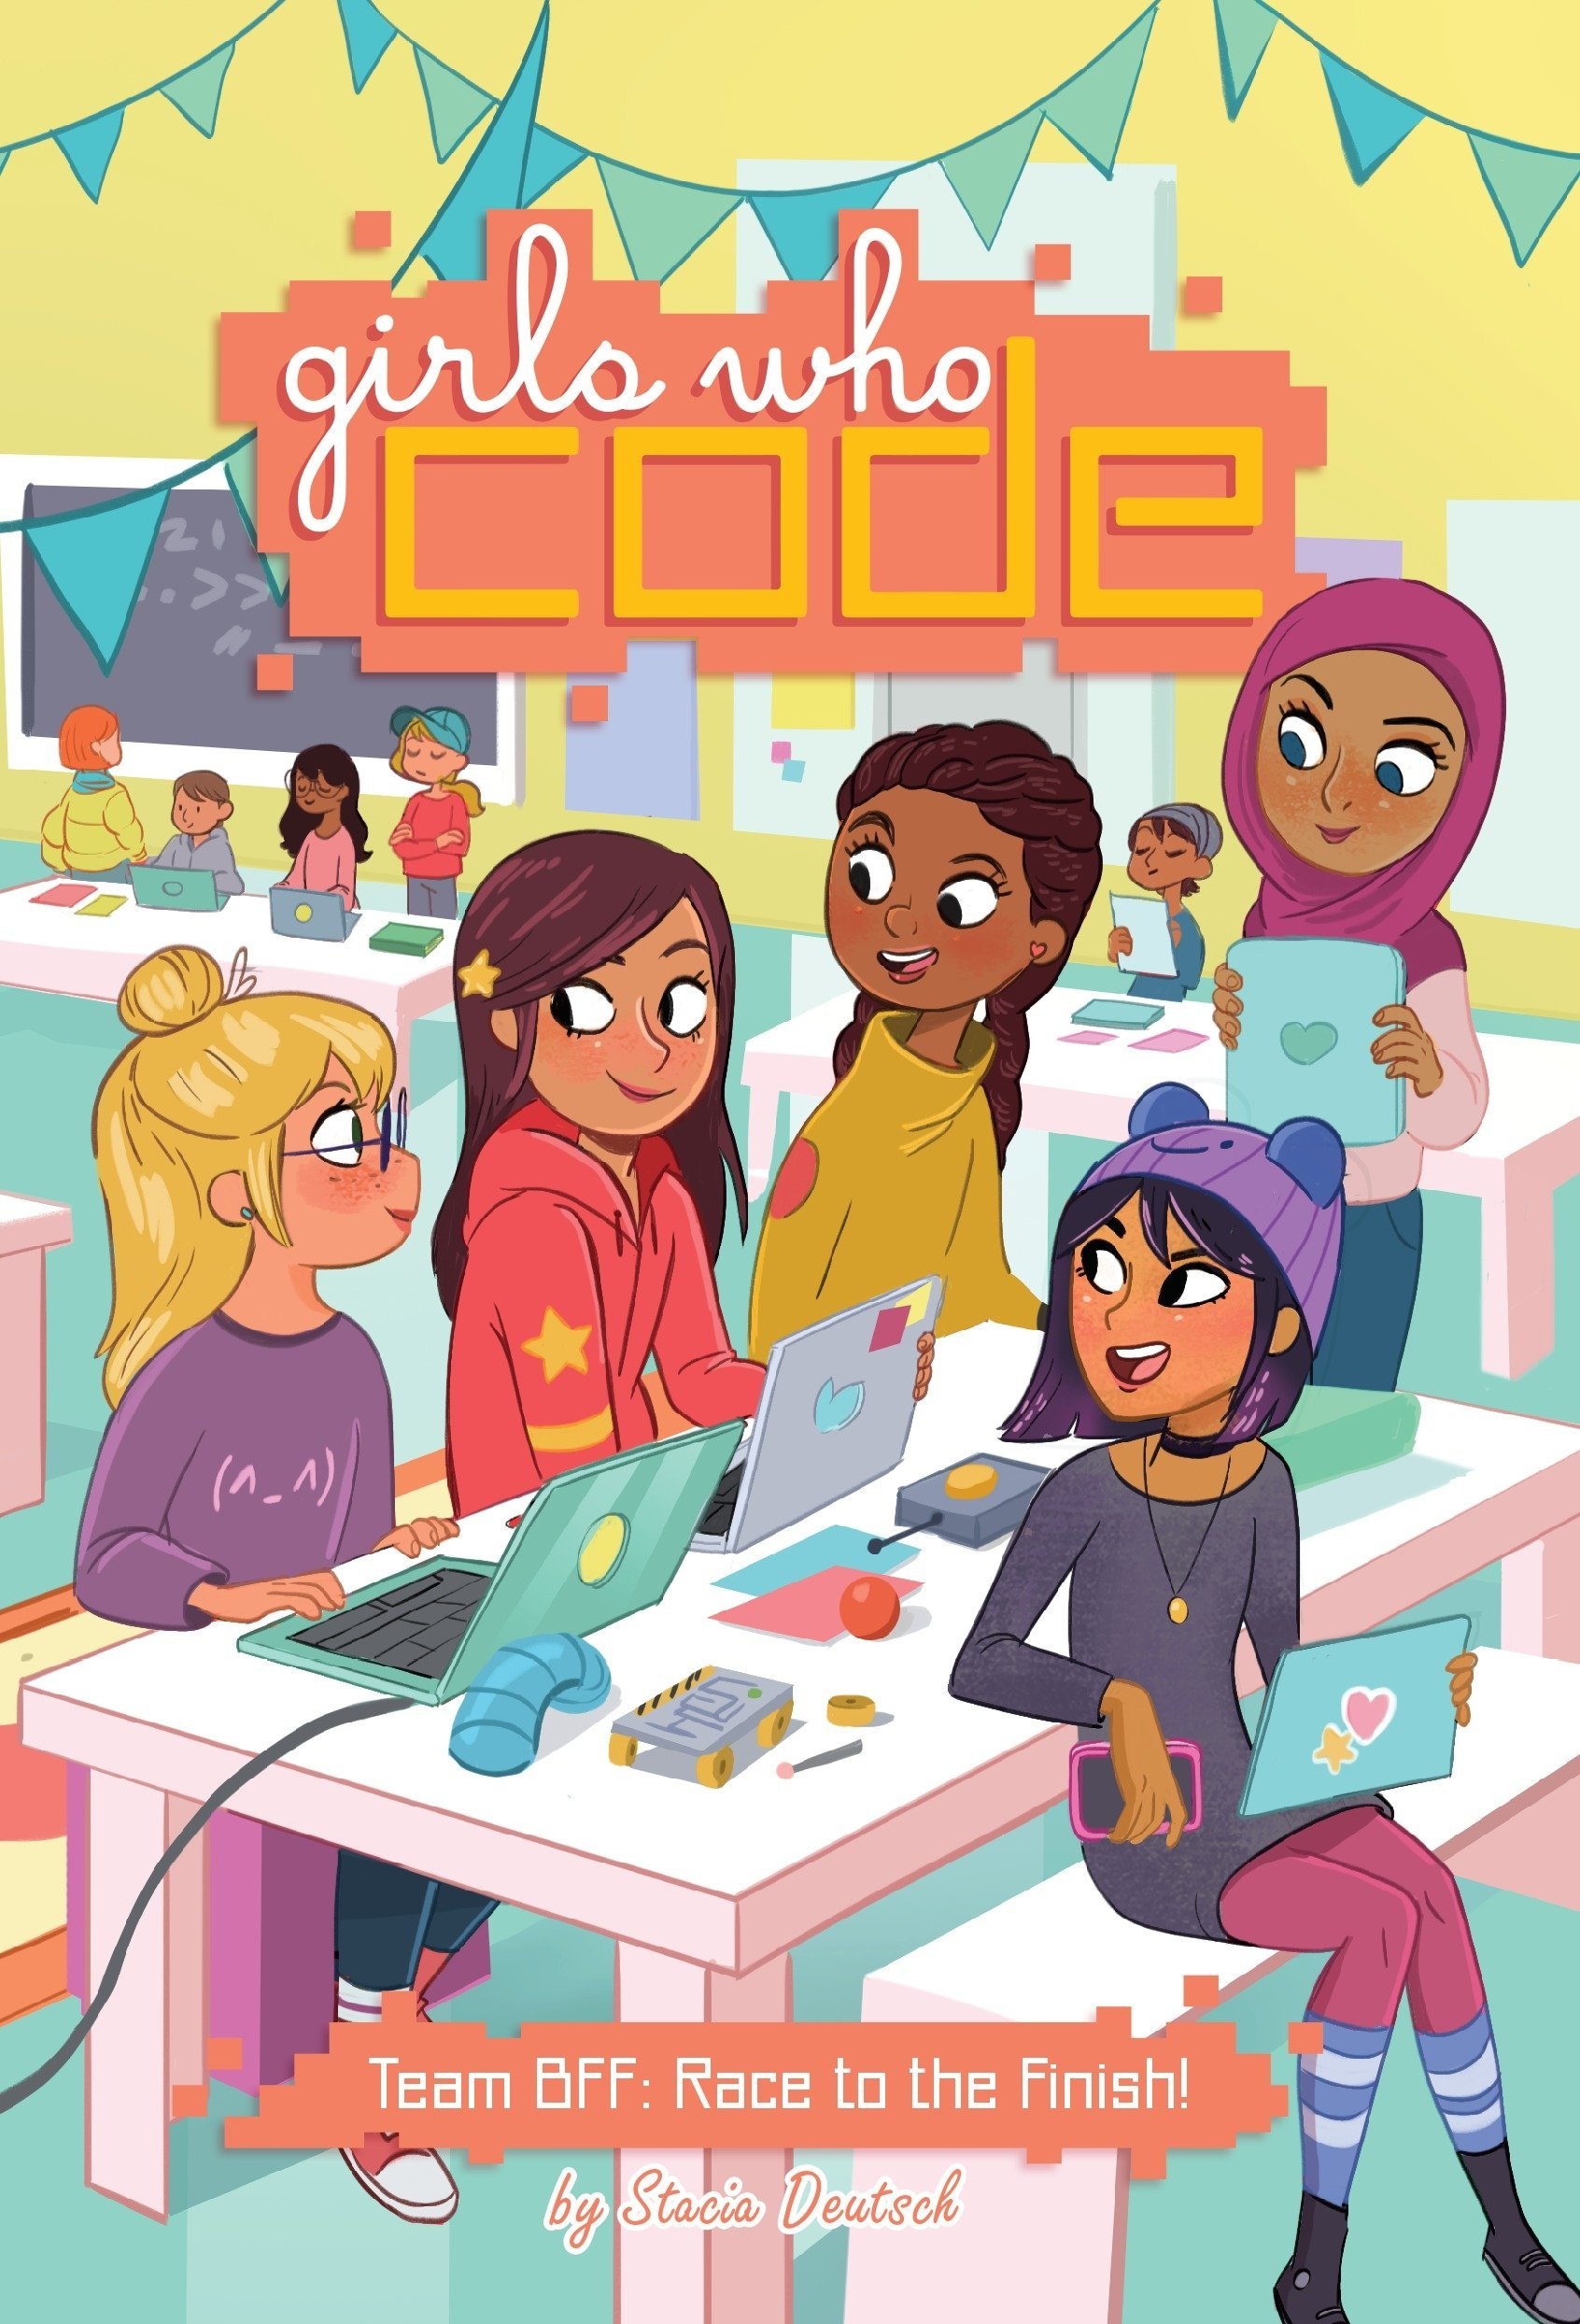 Download Team BFF: Race to the Finish! #2 (Girls Who Code) ebook